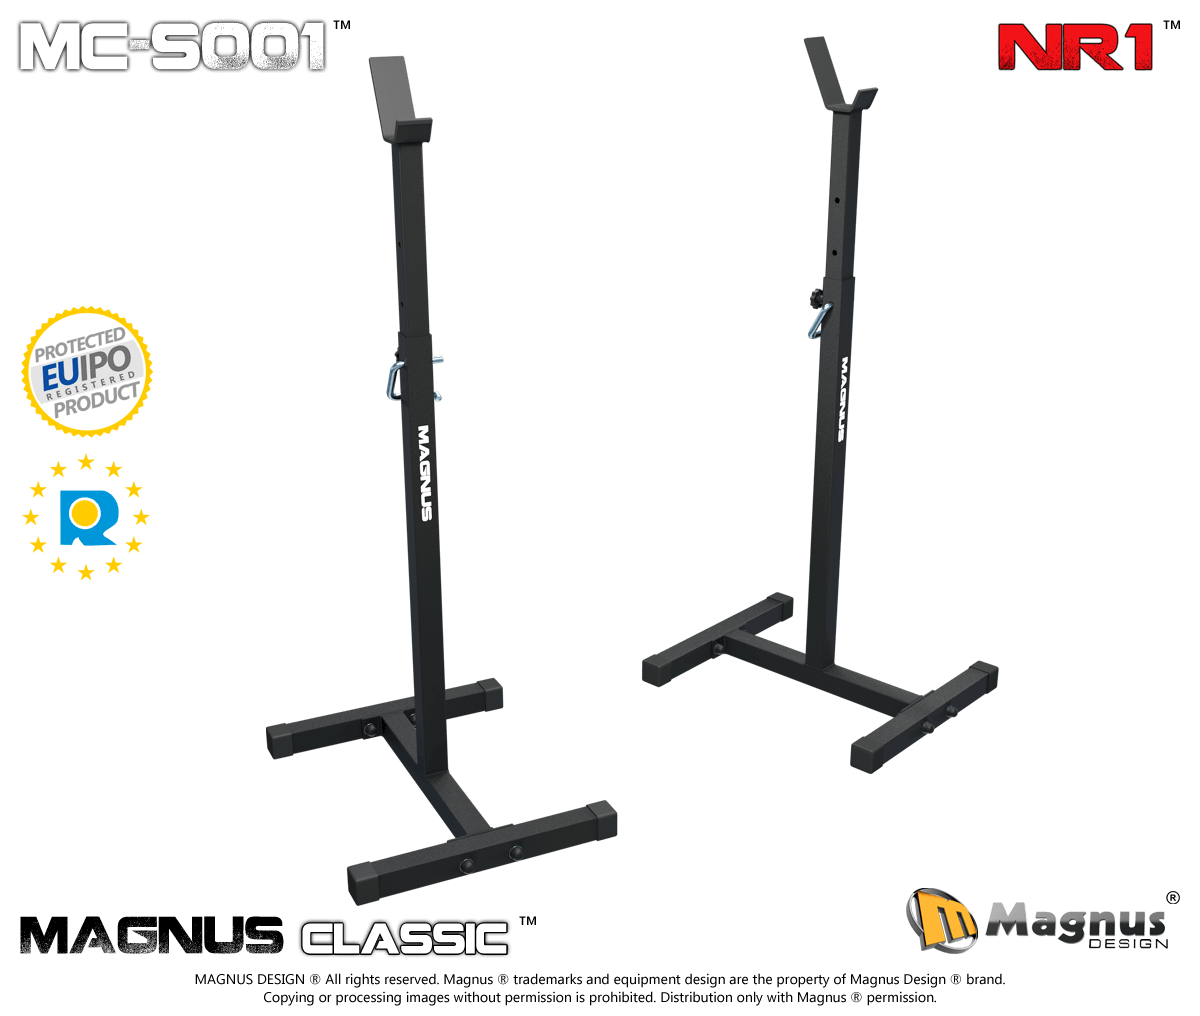 Training stands for barbell Magnus Classic MC-S001